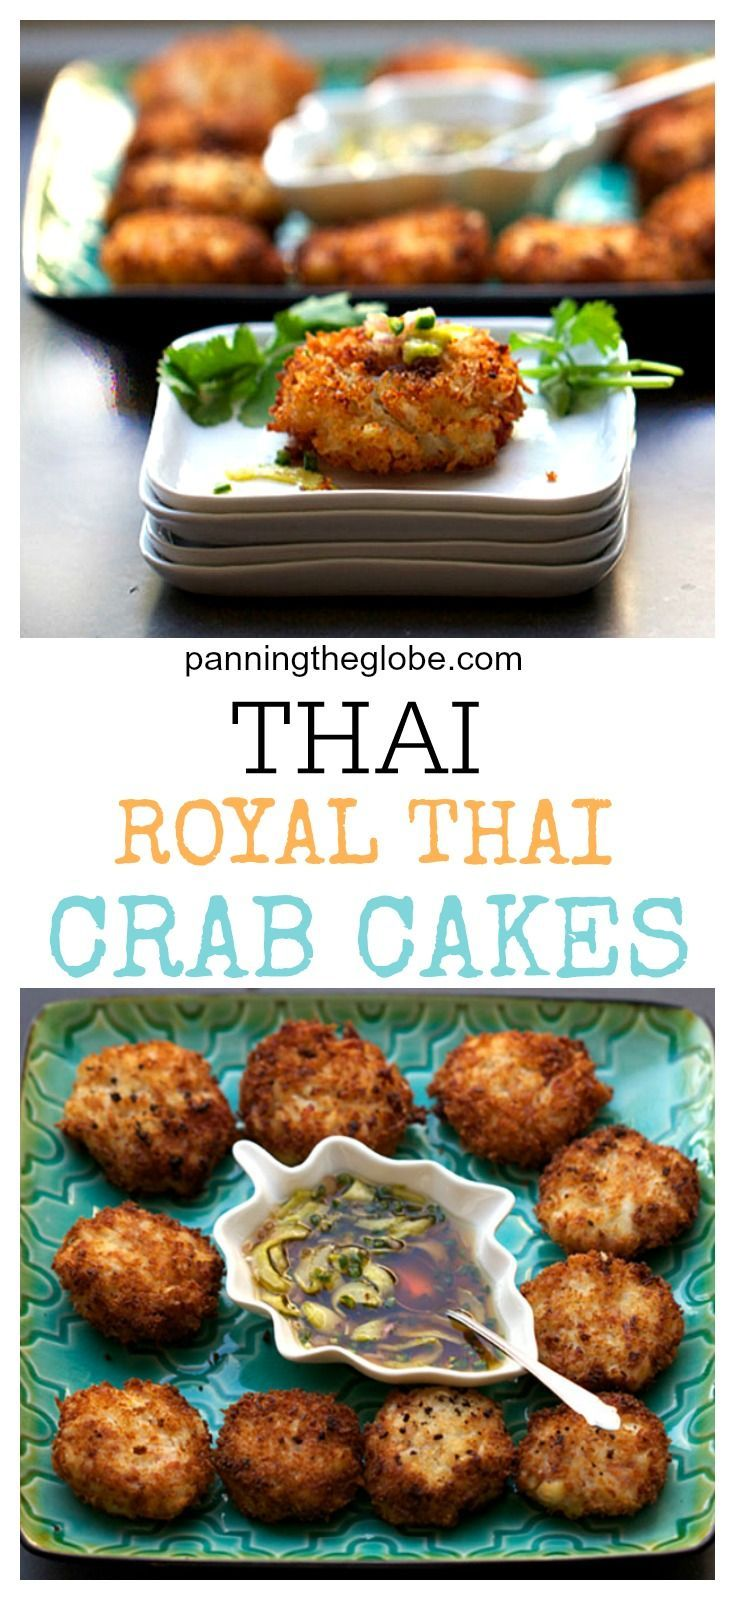 Royal Thai crab cakes are made with fresh crab, diced ham and fluffy rice. They're crisp on the outside, light inside. Delicious with this sweet and sour dipping sauce.